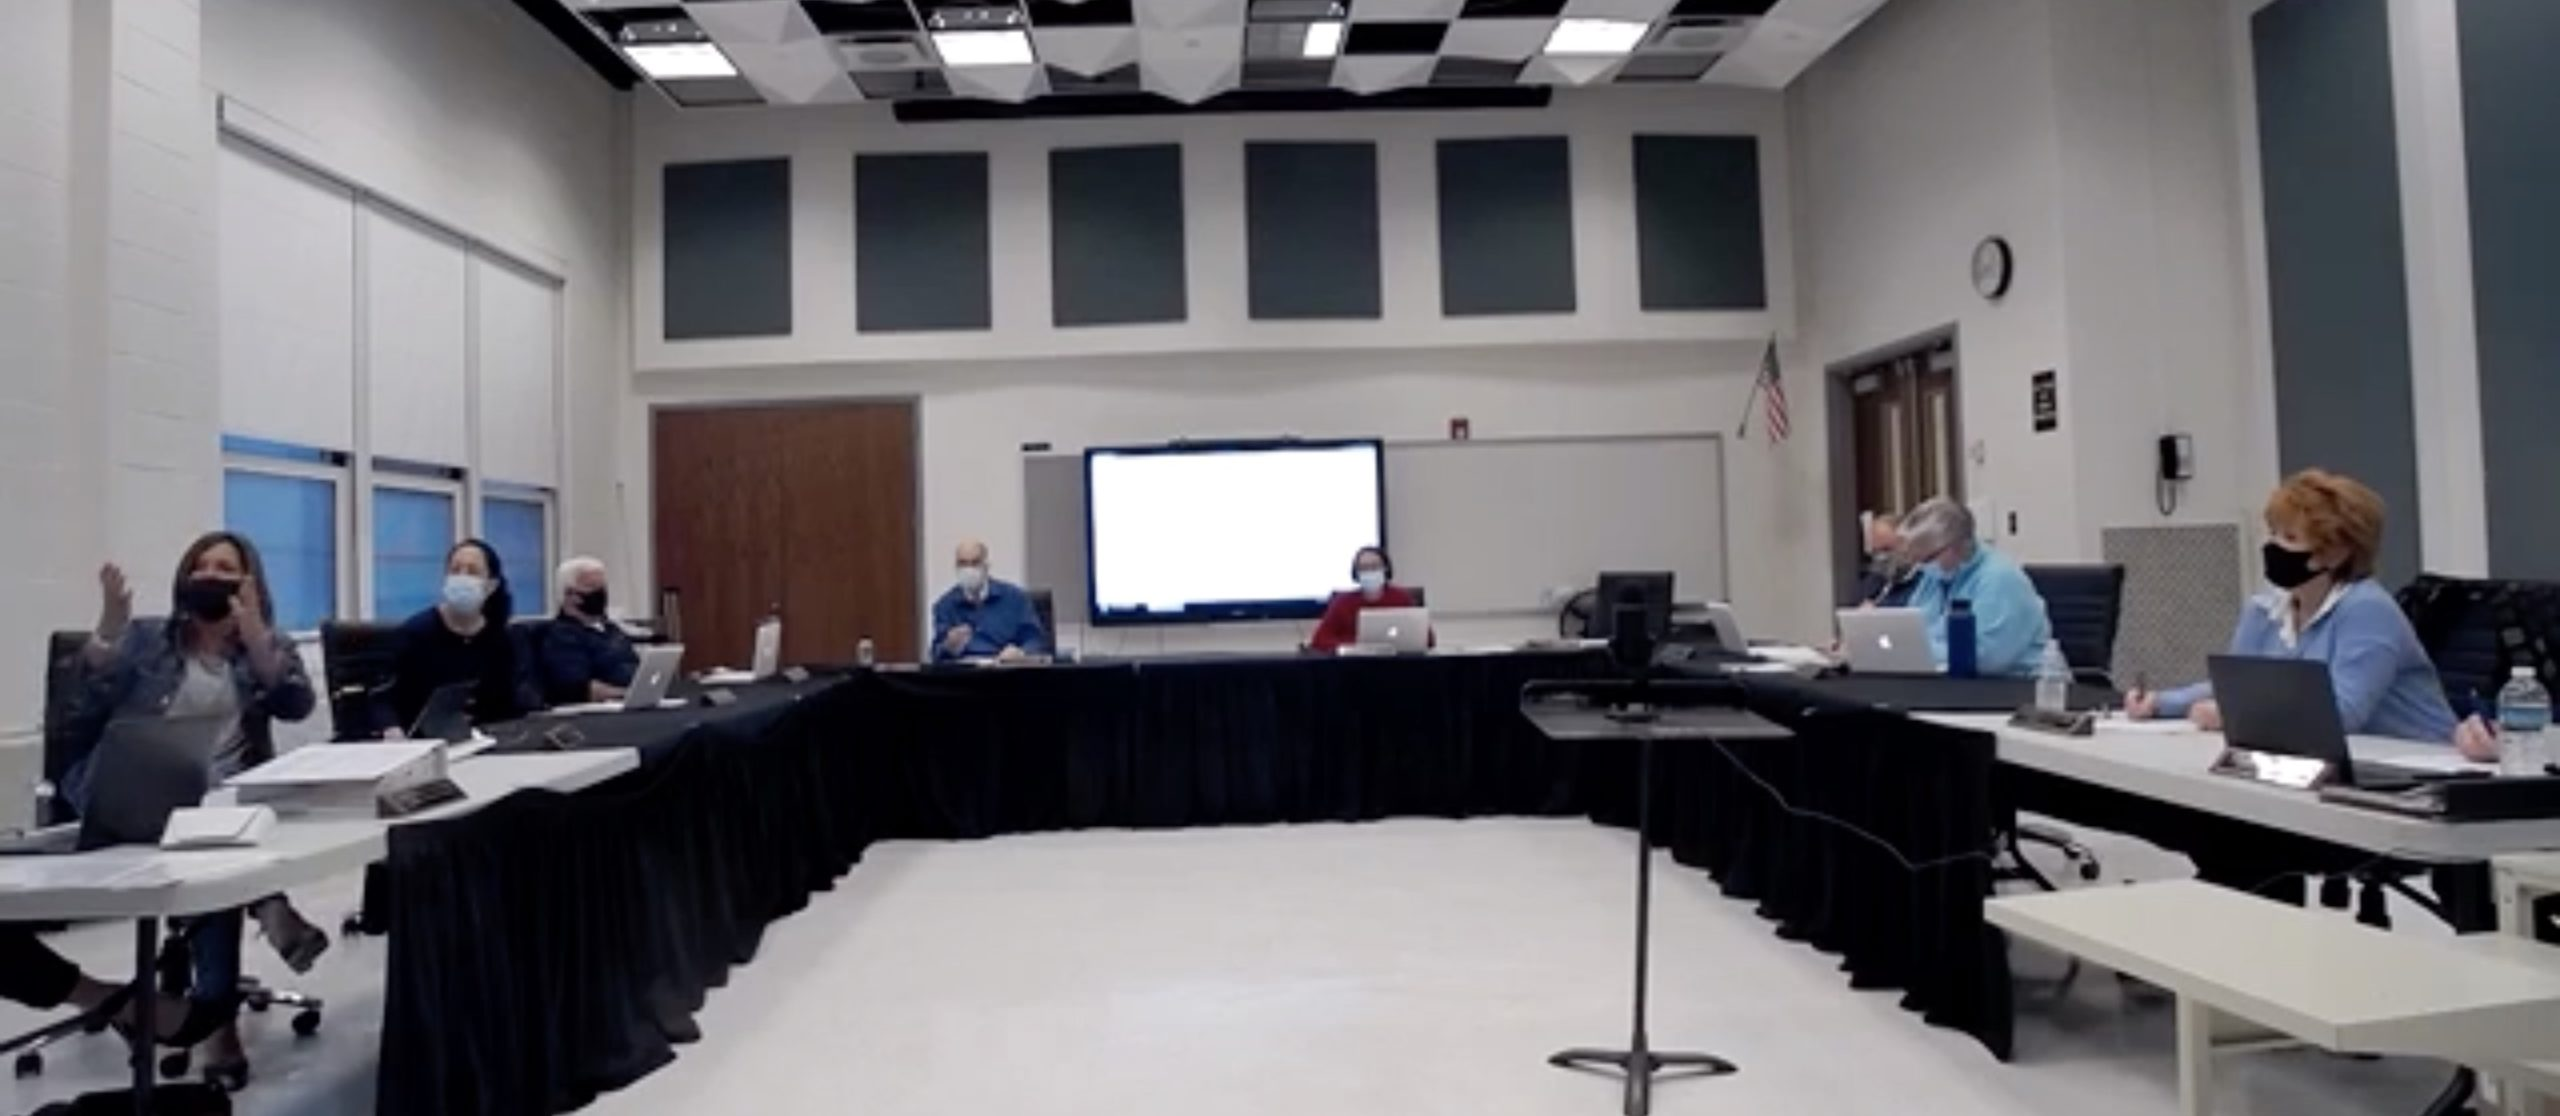 Westhampton Beach board of education members respond to parents asking what will be done about perceived racism in the school district during the May 10 meeting.